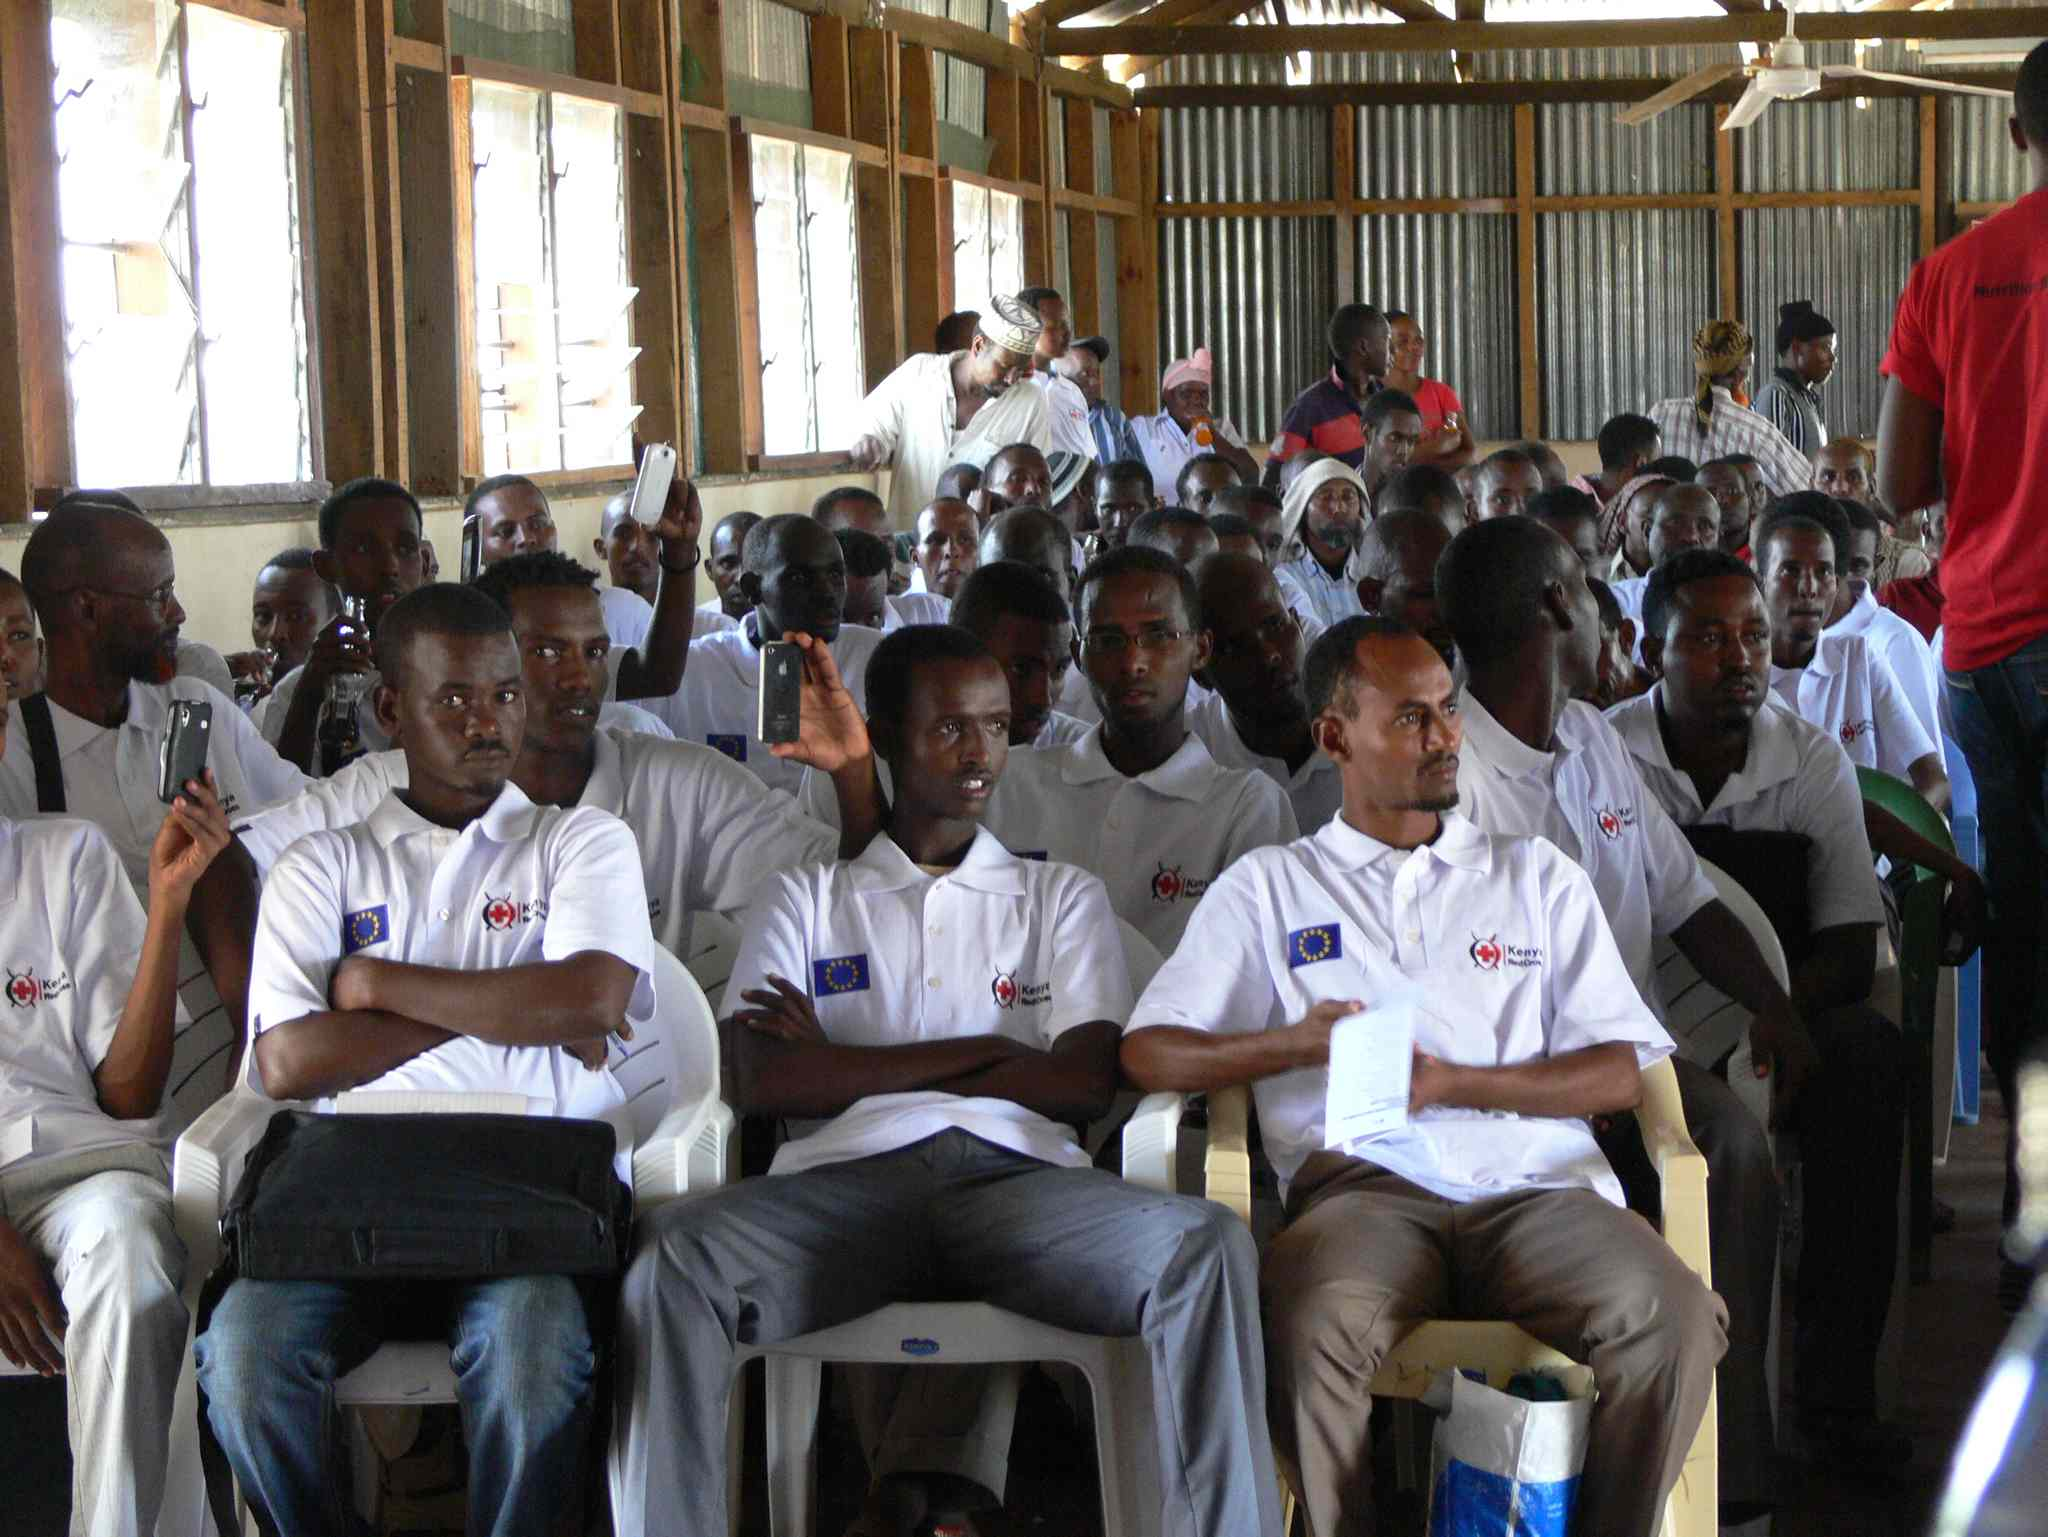 Graduation day for 60 students in the 20-week reproductive and preventive health program put on by the Kenyan Red Cross. The men and women who are refugees will work in their communities to promote health care. The men completed the 'champions for reproductive health' program.